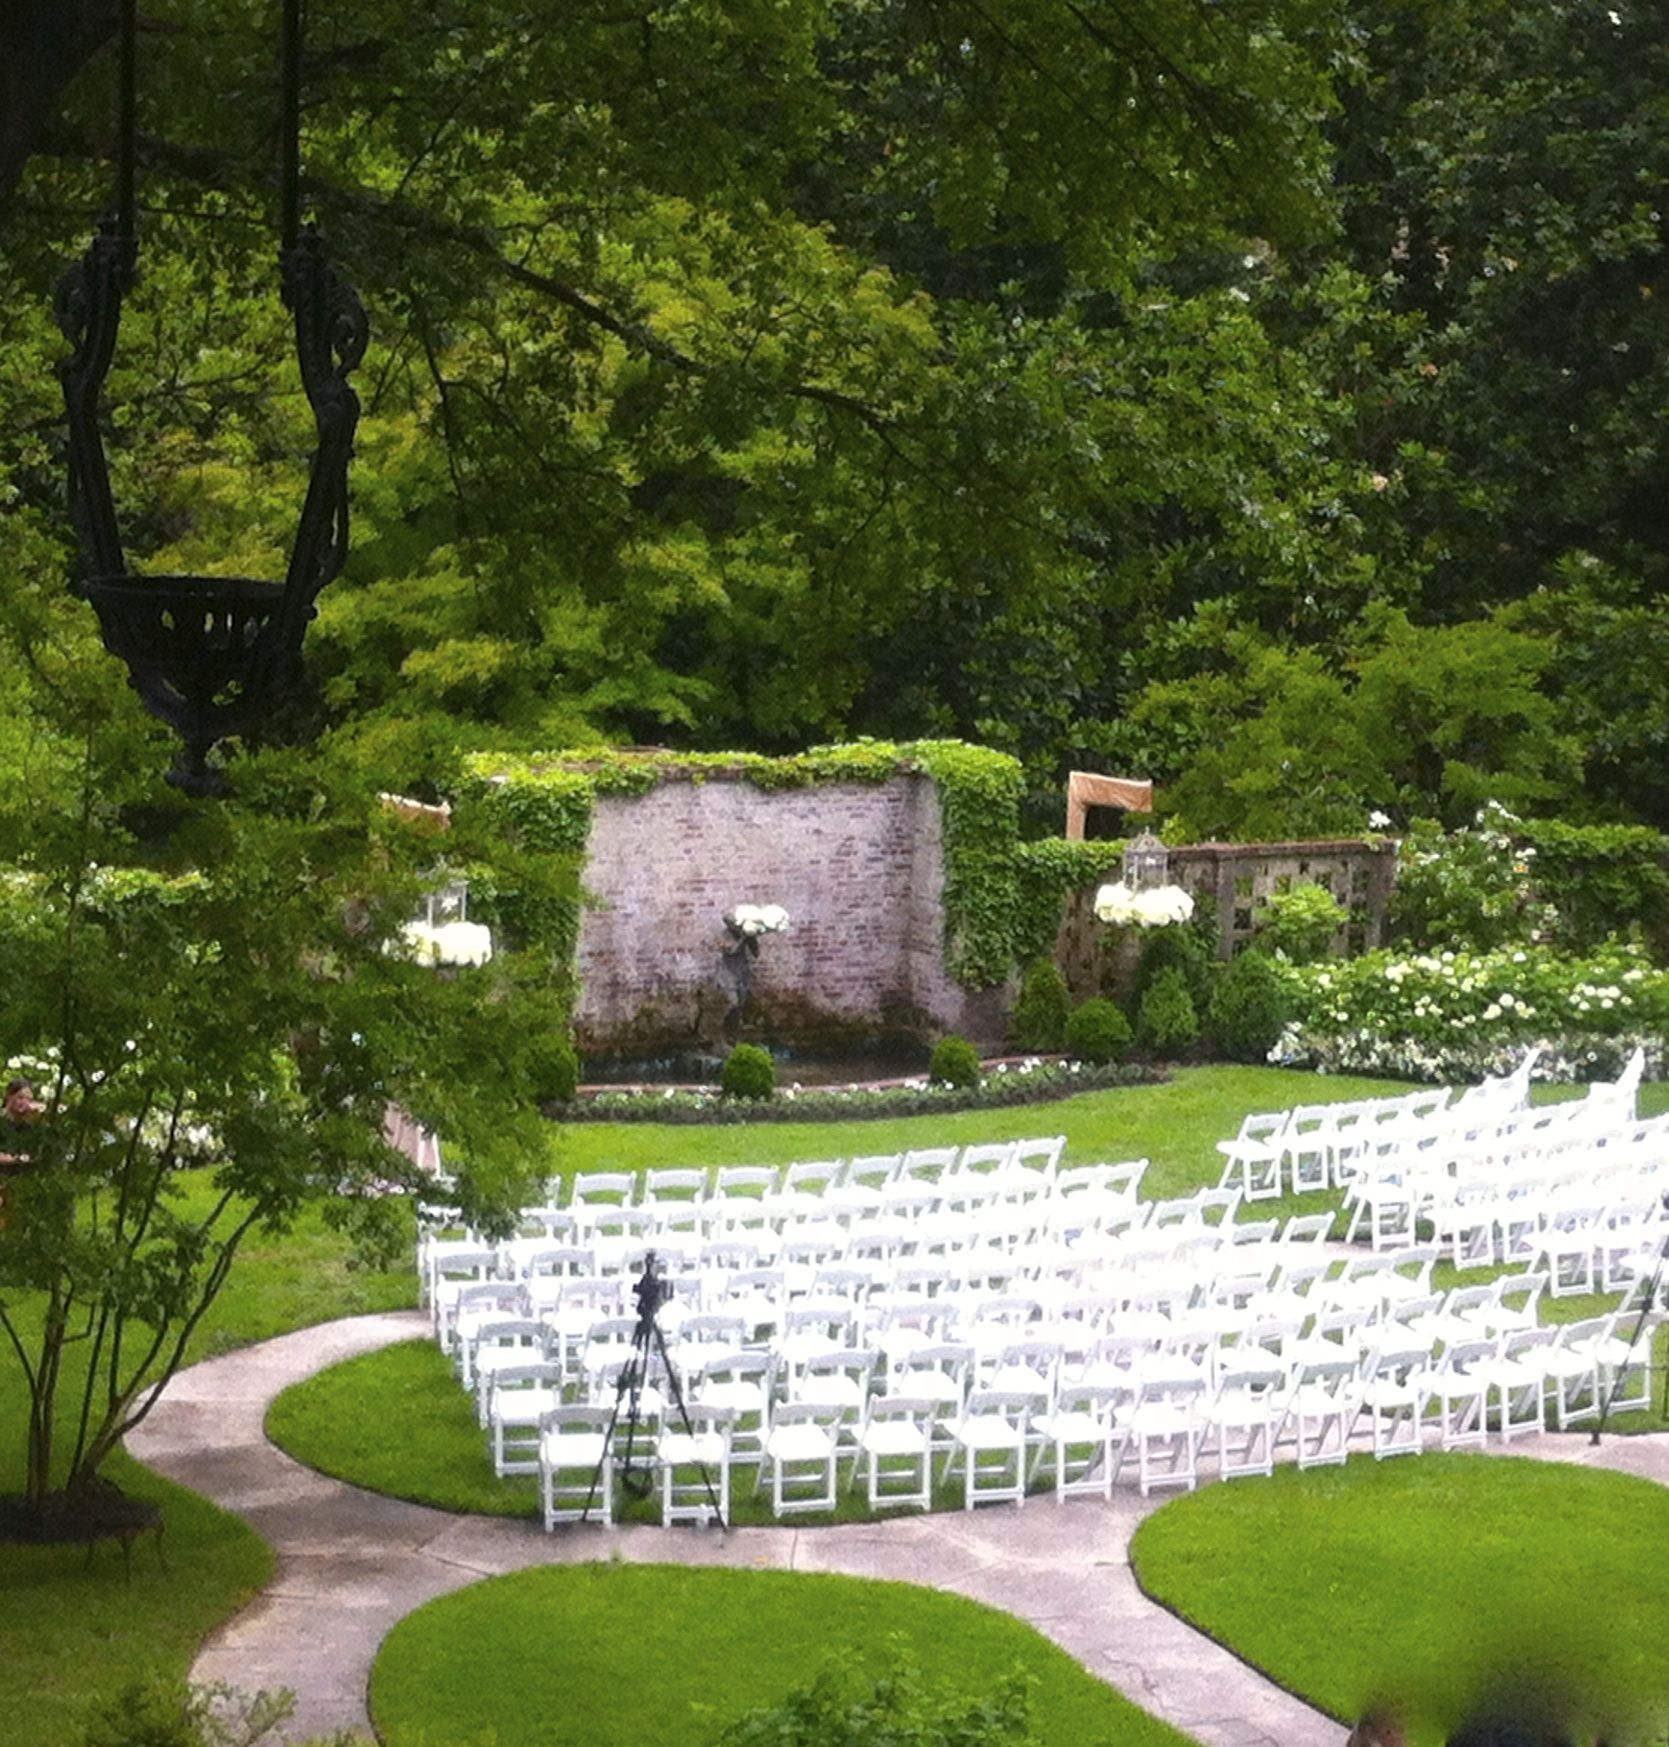 Outdoor memphis wedding venue garden wedding annesdale for Outdoor wedding venues ny